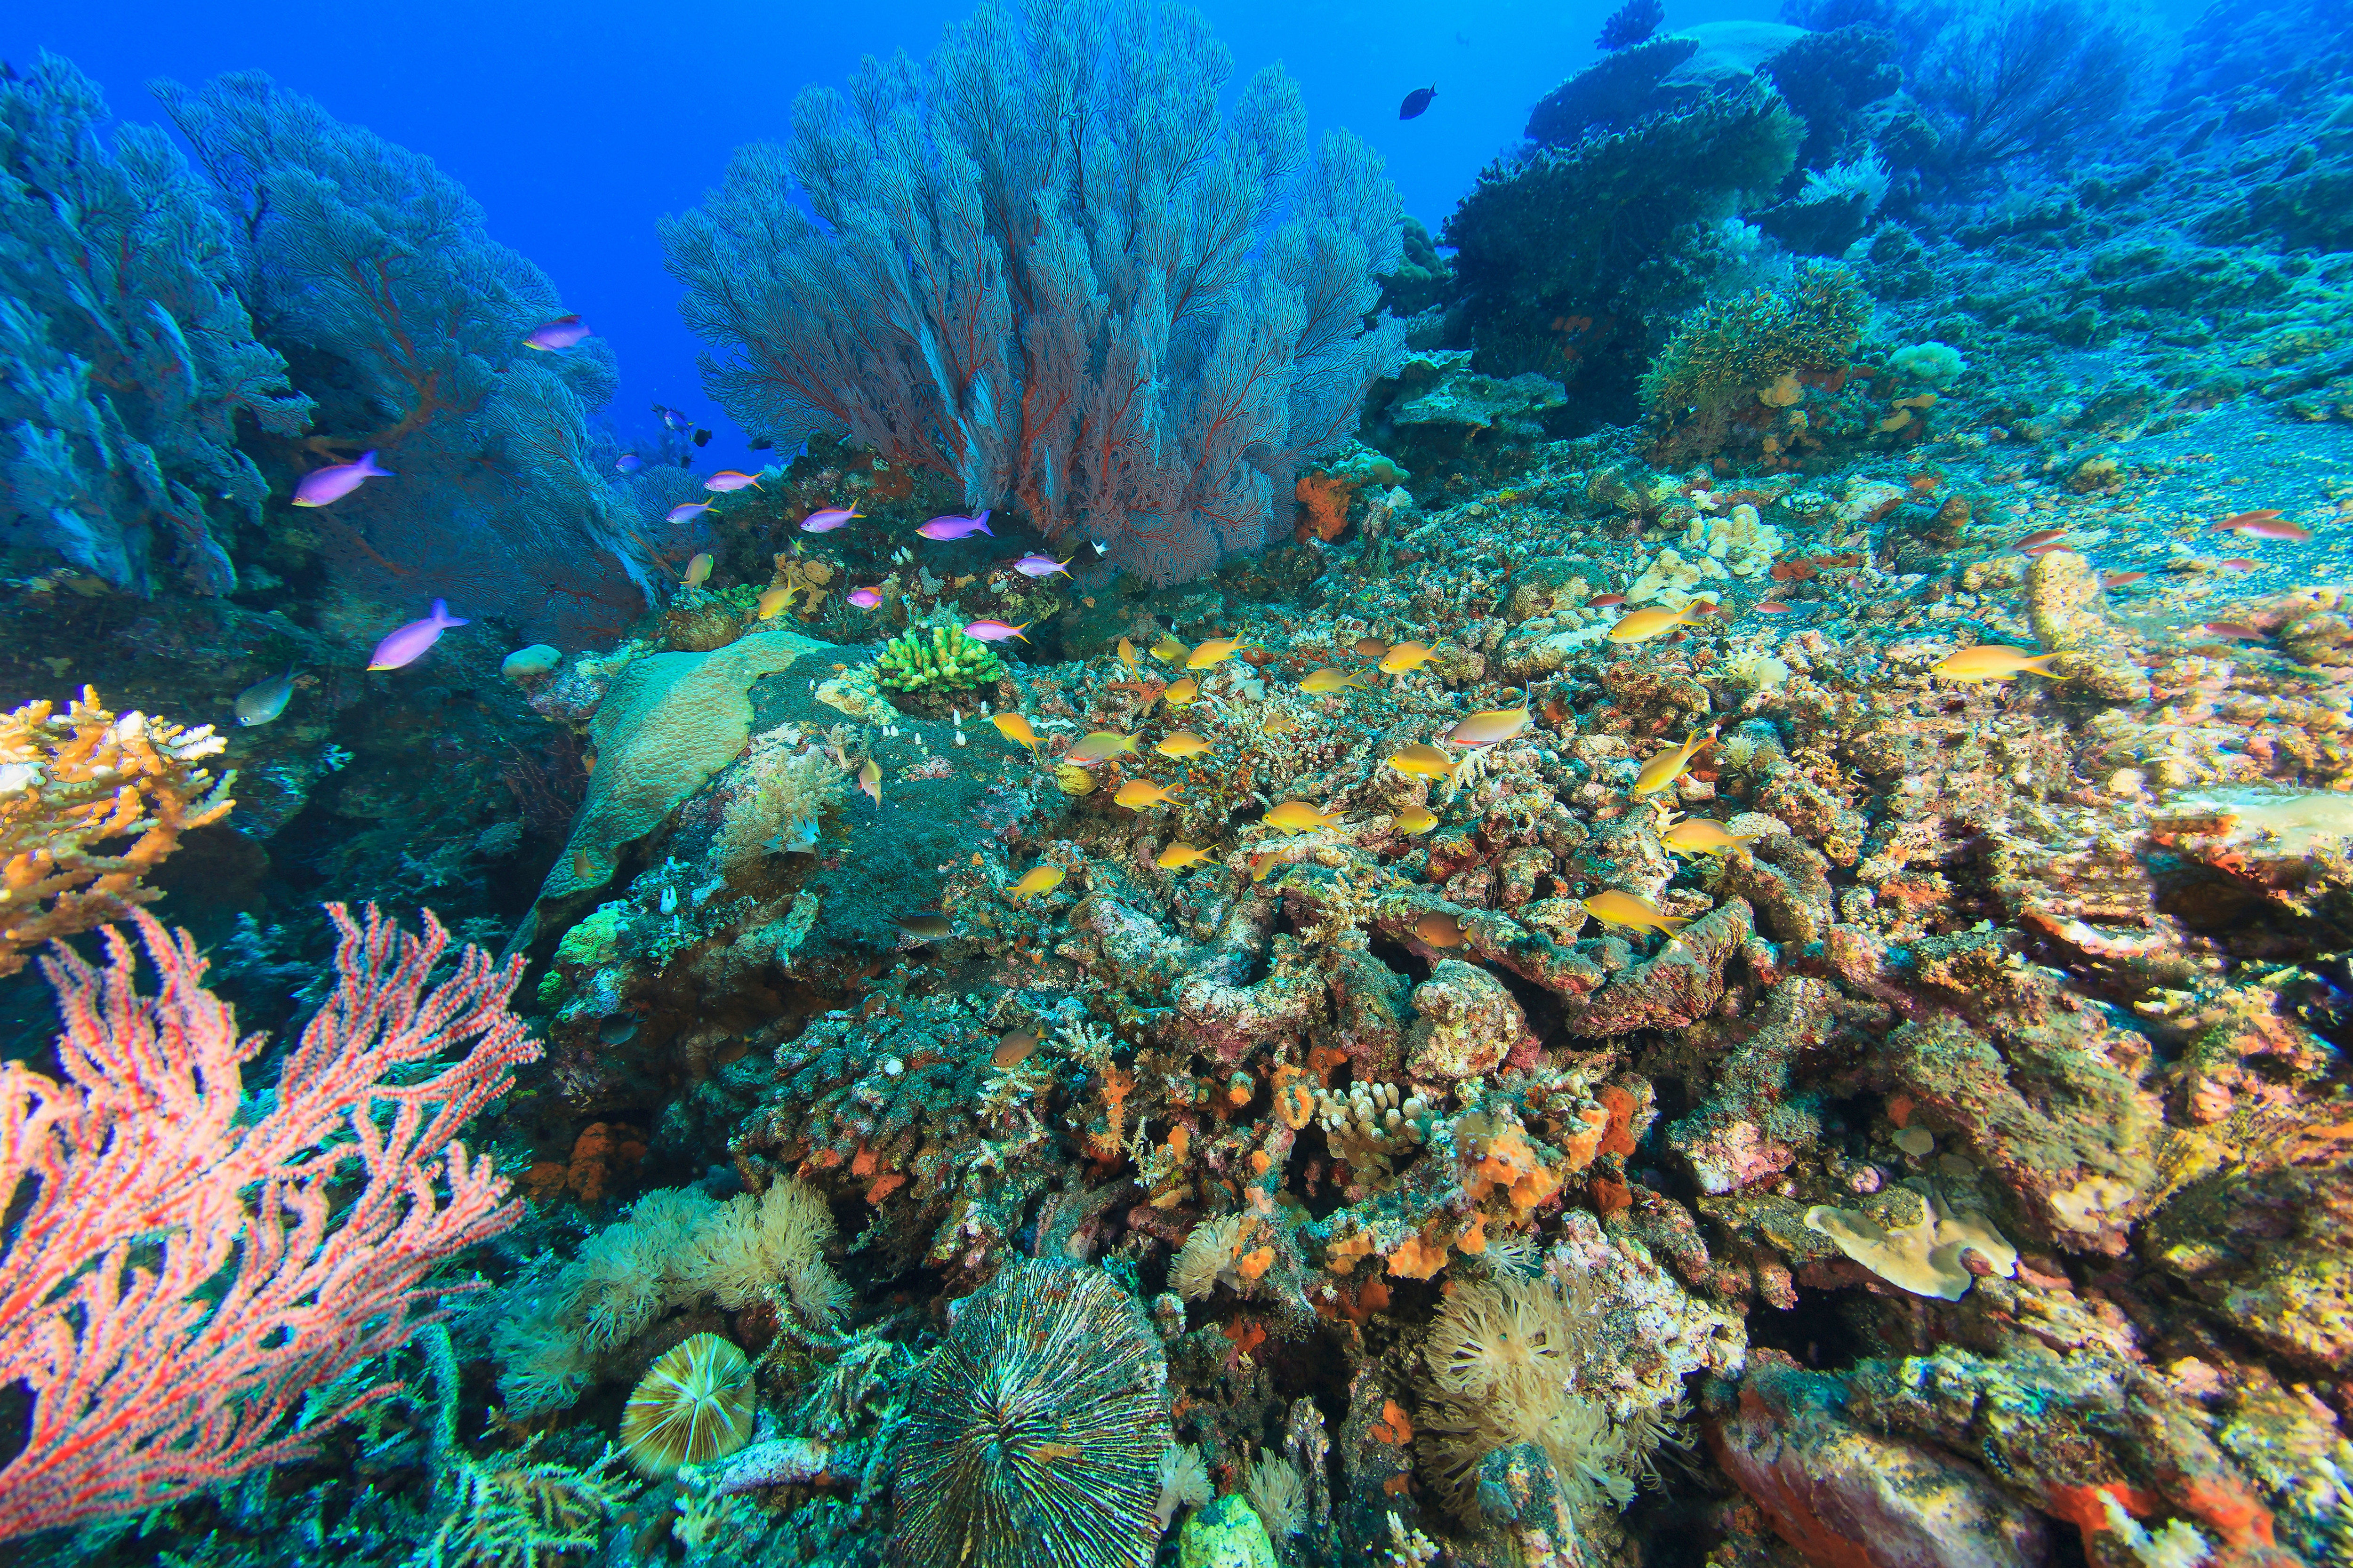 9541 Gettyimages 166265305 Fish Swimming In Coral Reef